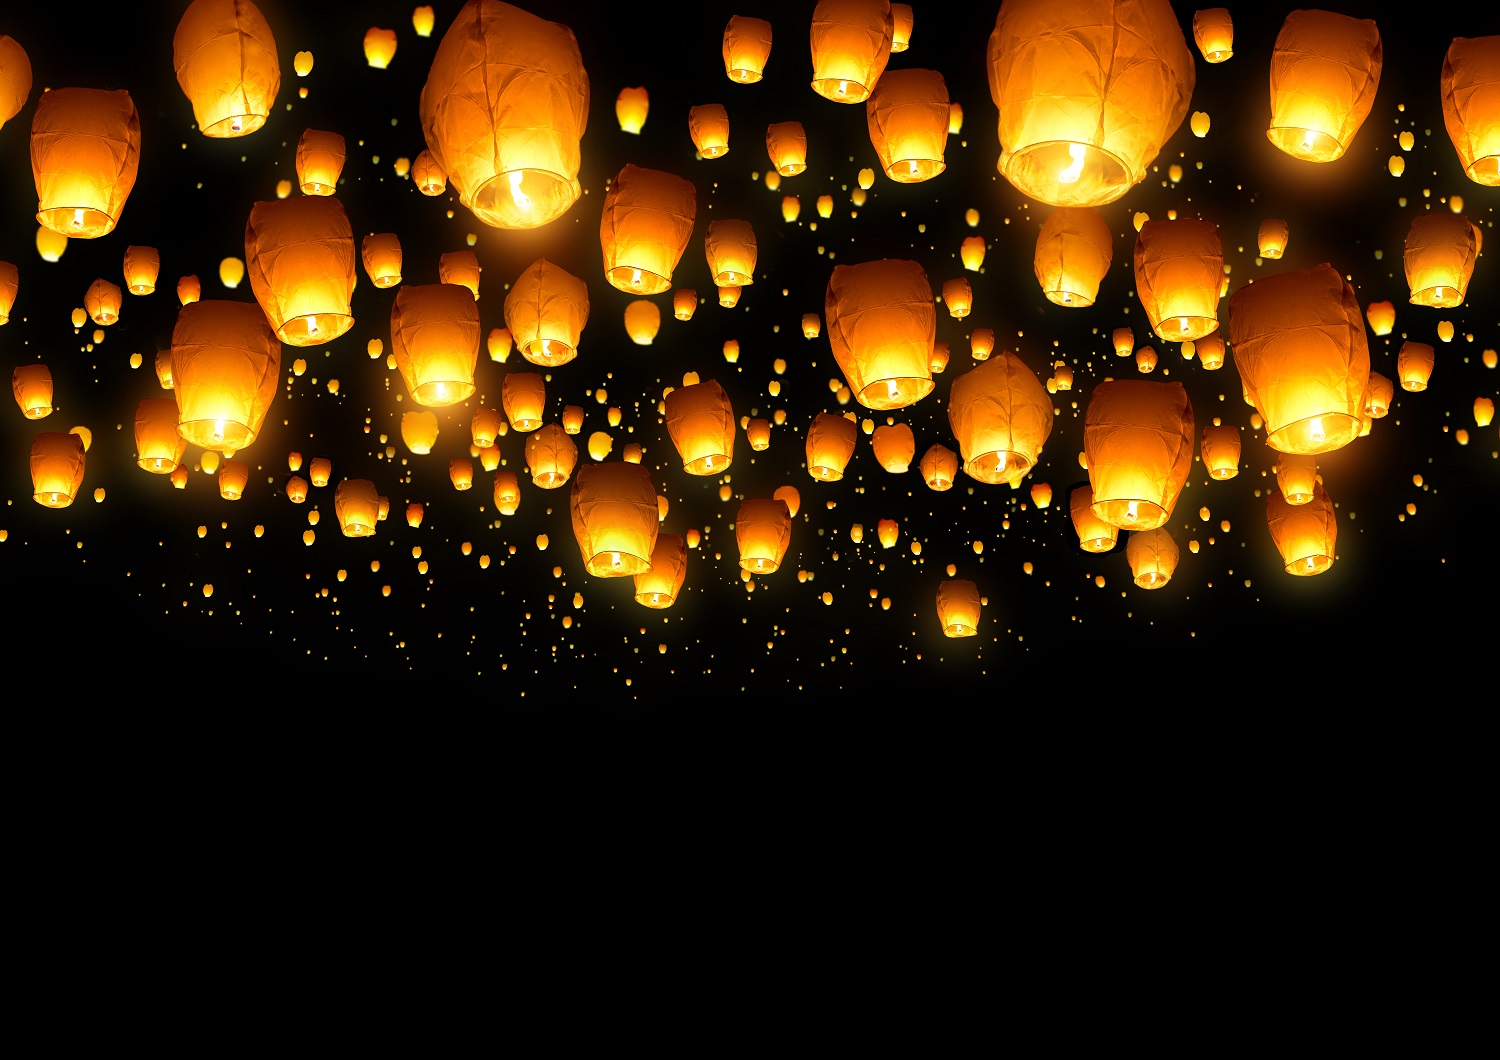 sky-lanterns-release-diwali-new-year